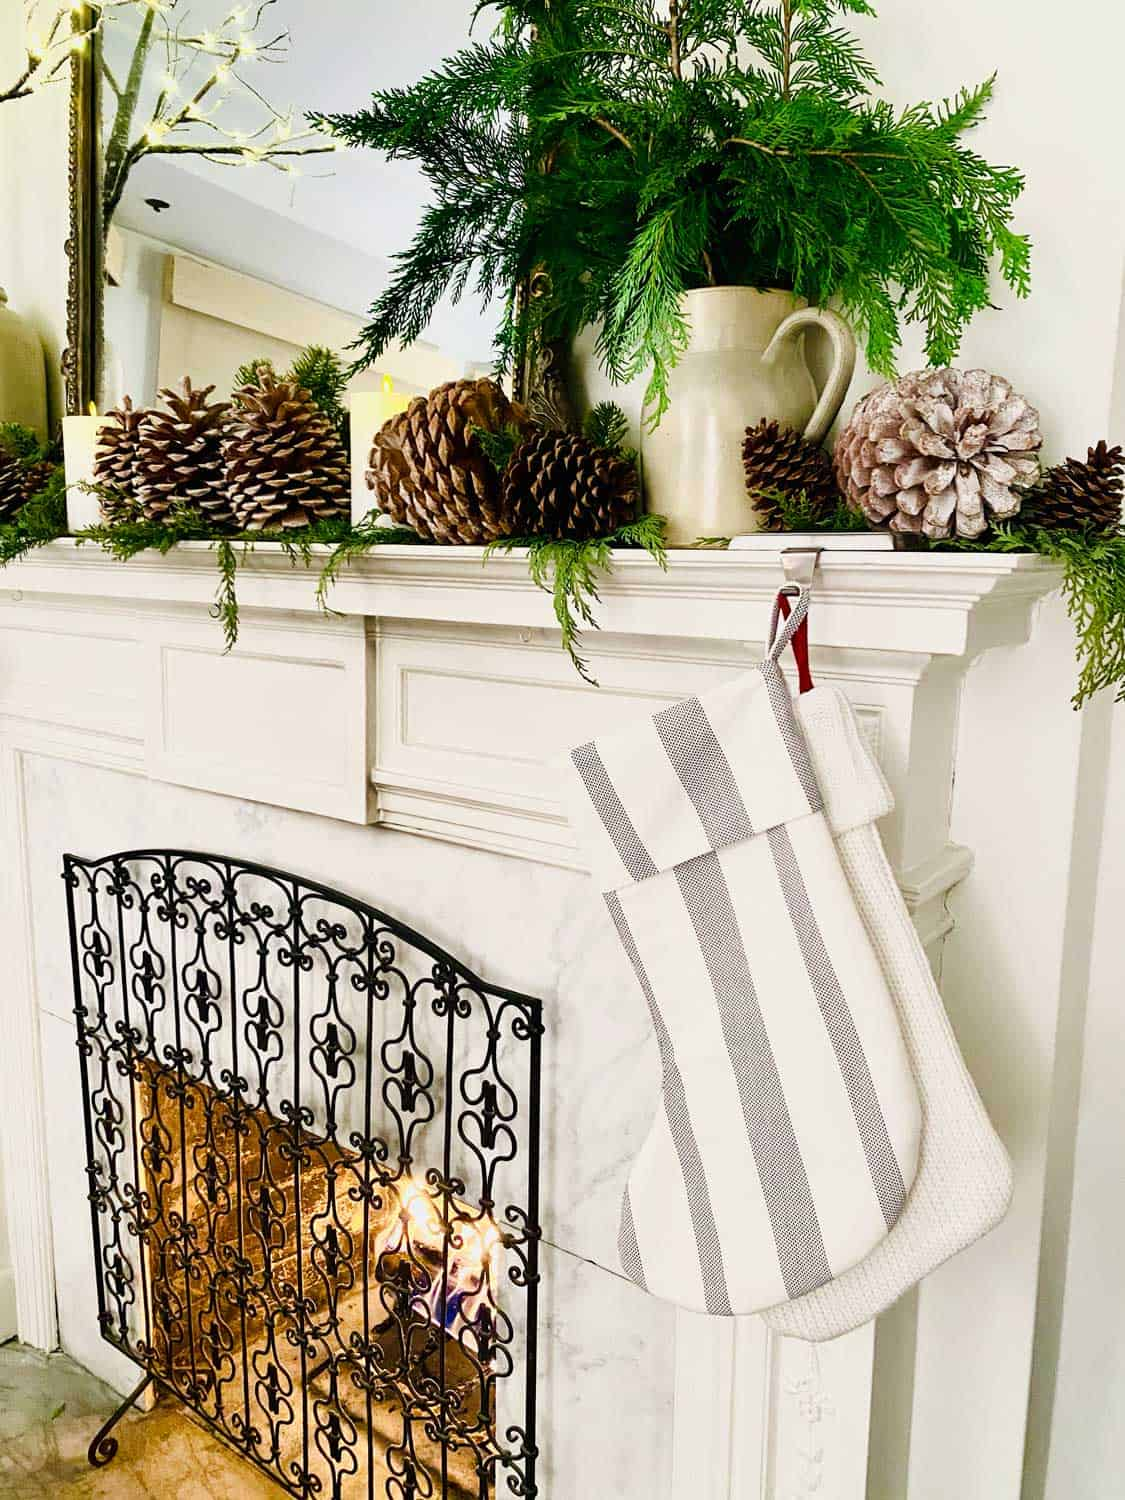 Vintage White Mantel With Christmas Stockings From Target